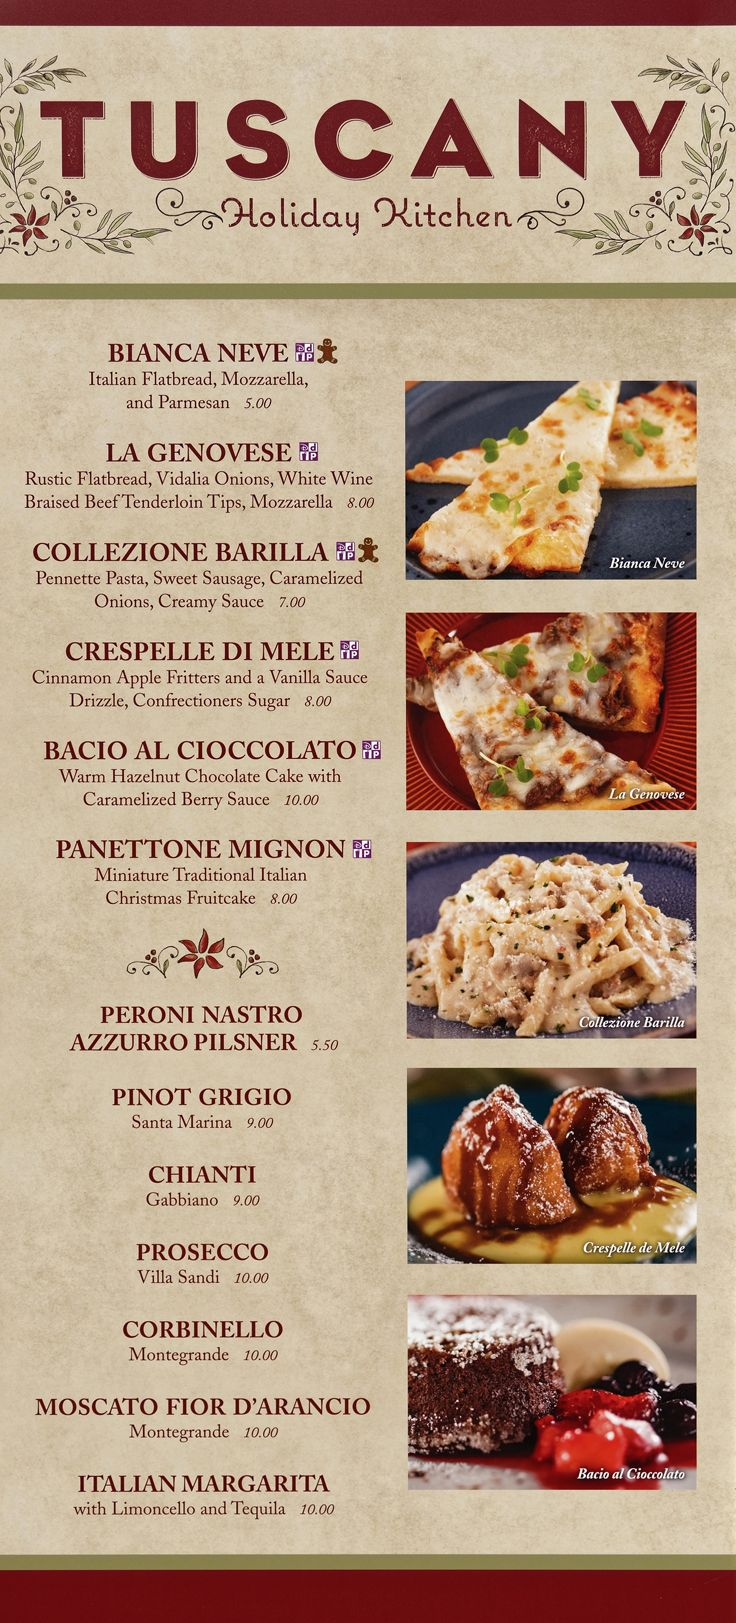 The 2019 Tuscany (Italy Pavilion) menu board with prices